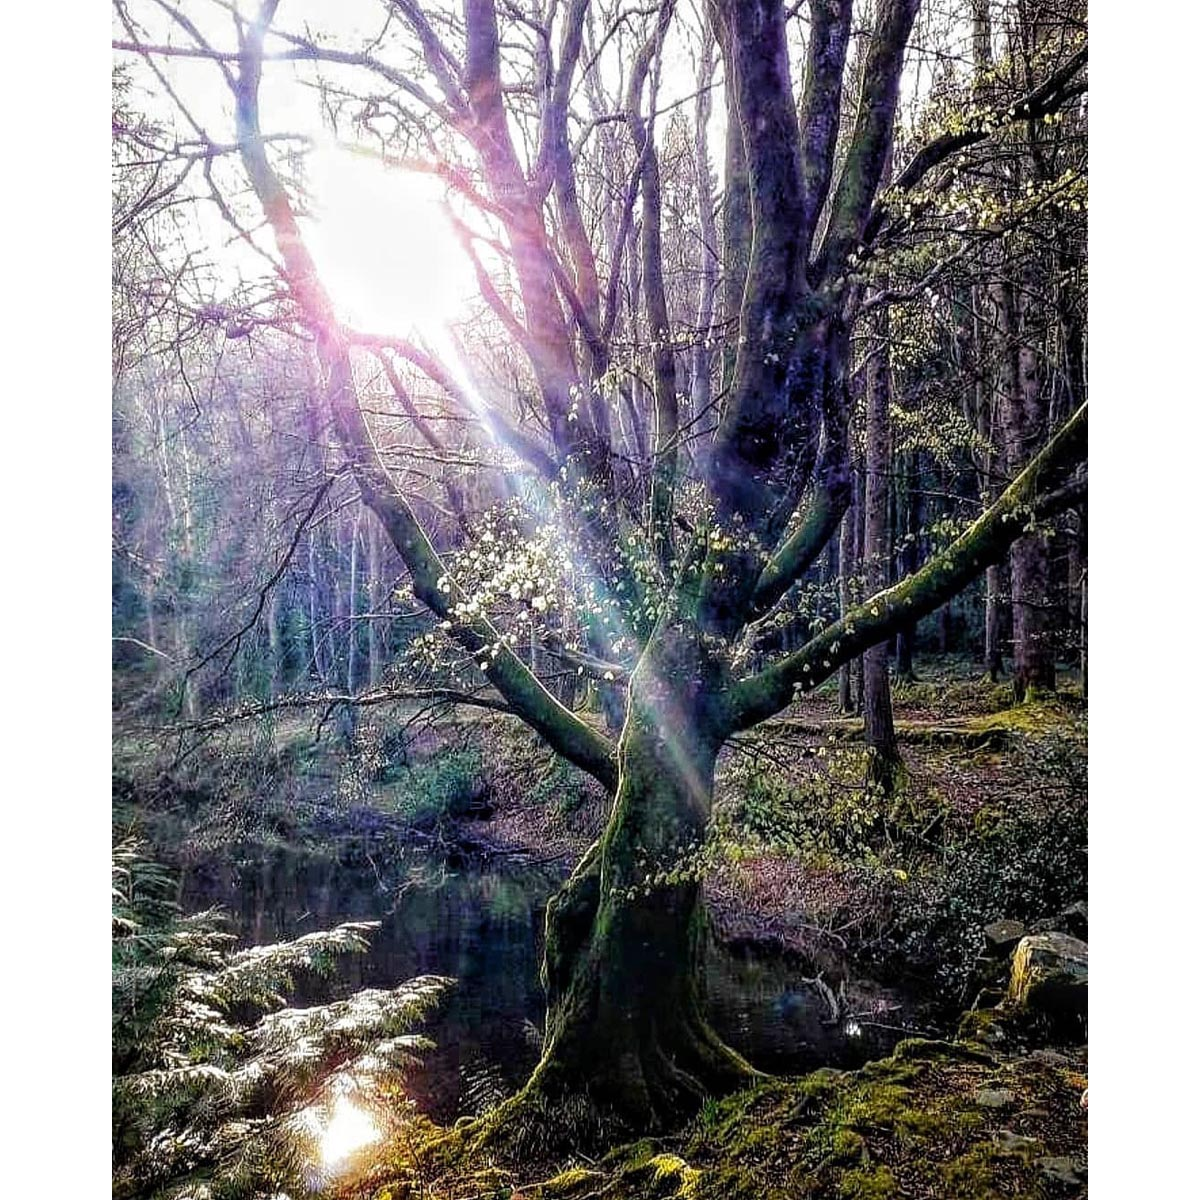 Bright sunlight reflected in water at Tollymore Forest Park, Northern Ireland - photo 1470